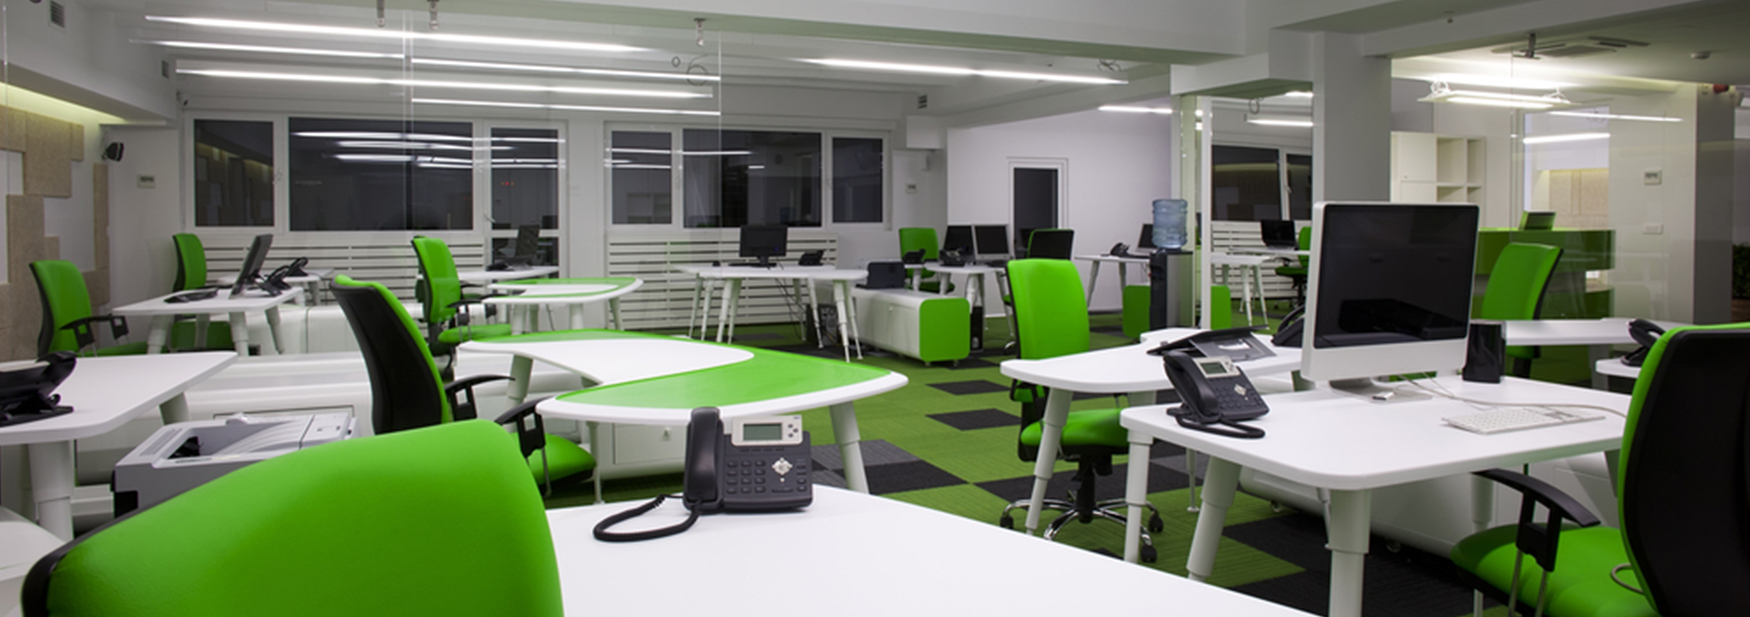 Space planning space planning uk for Office space planning